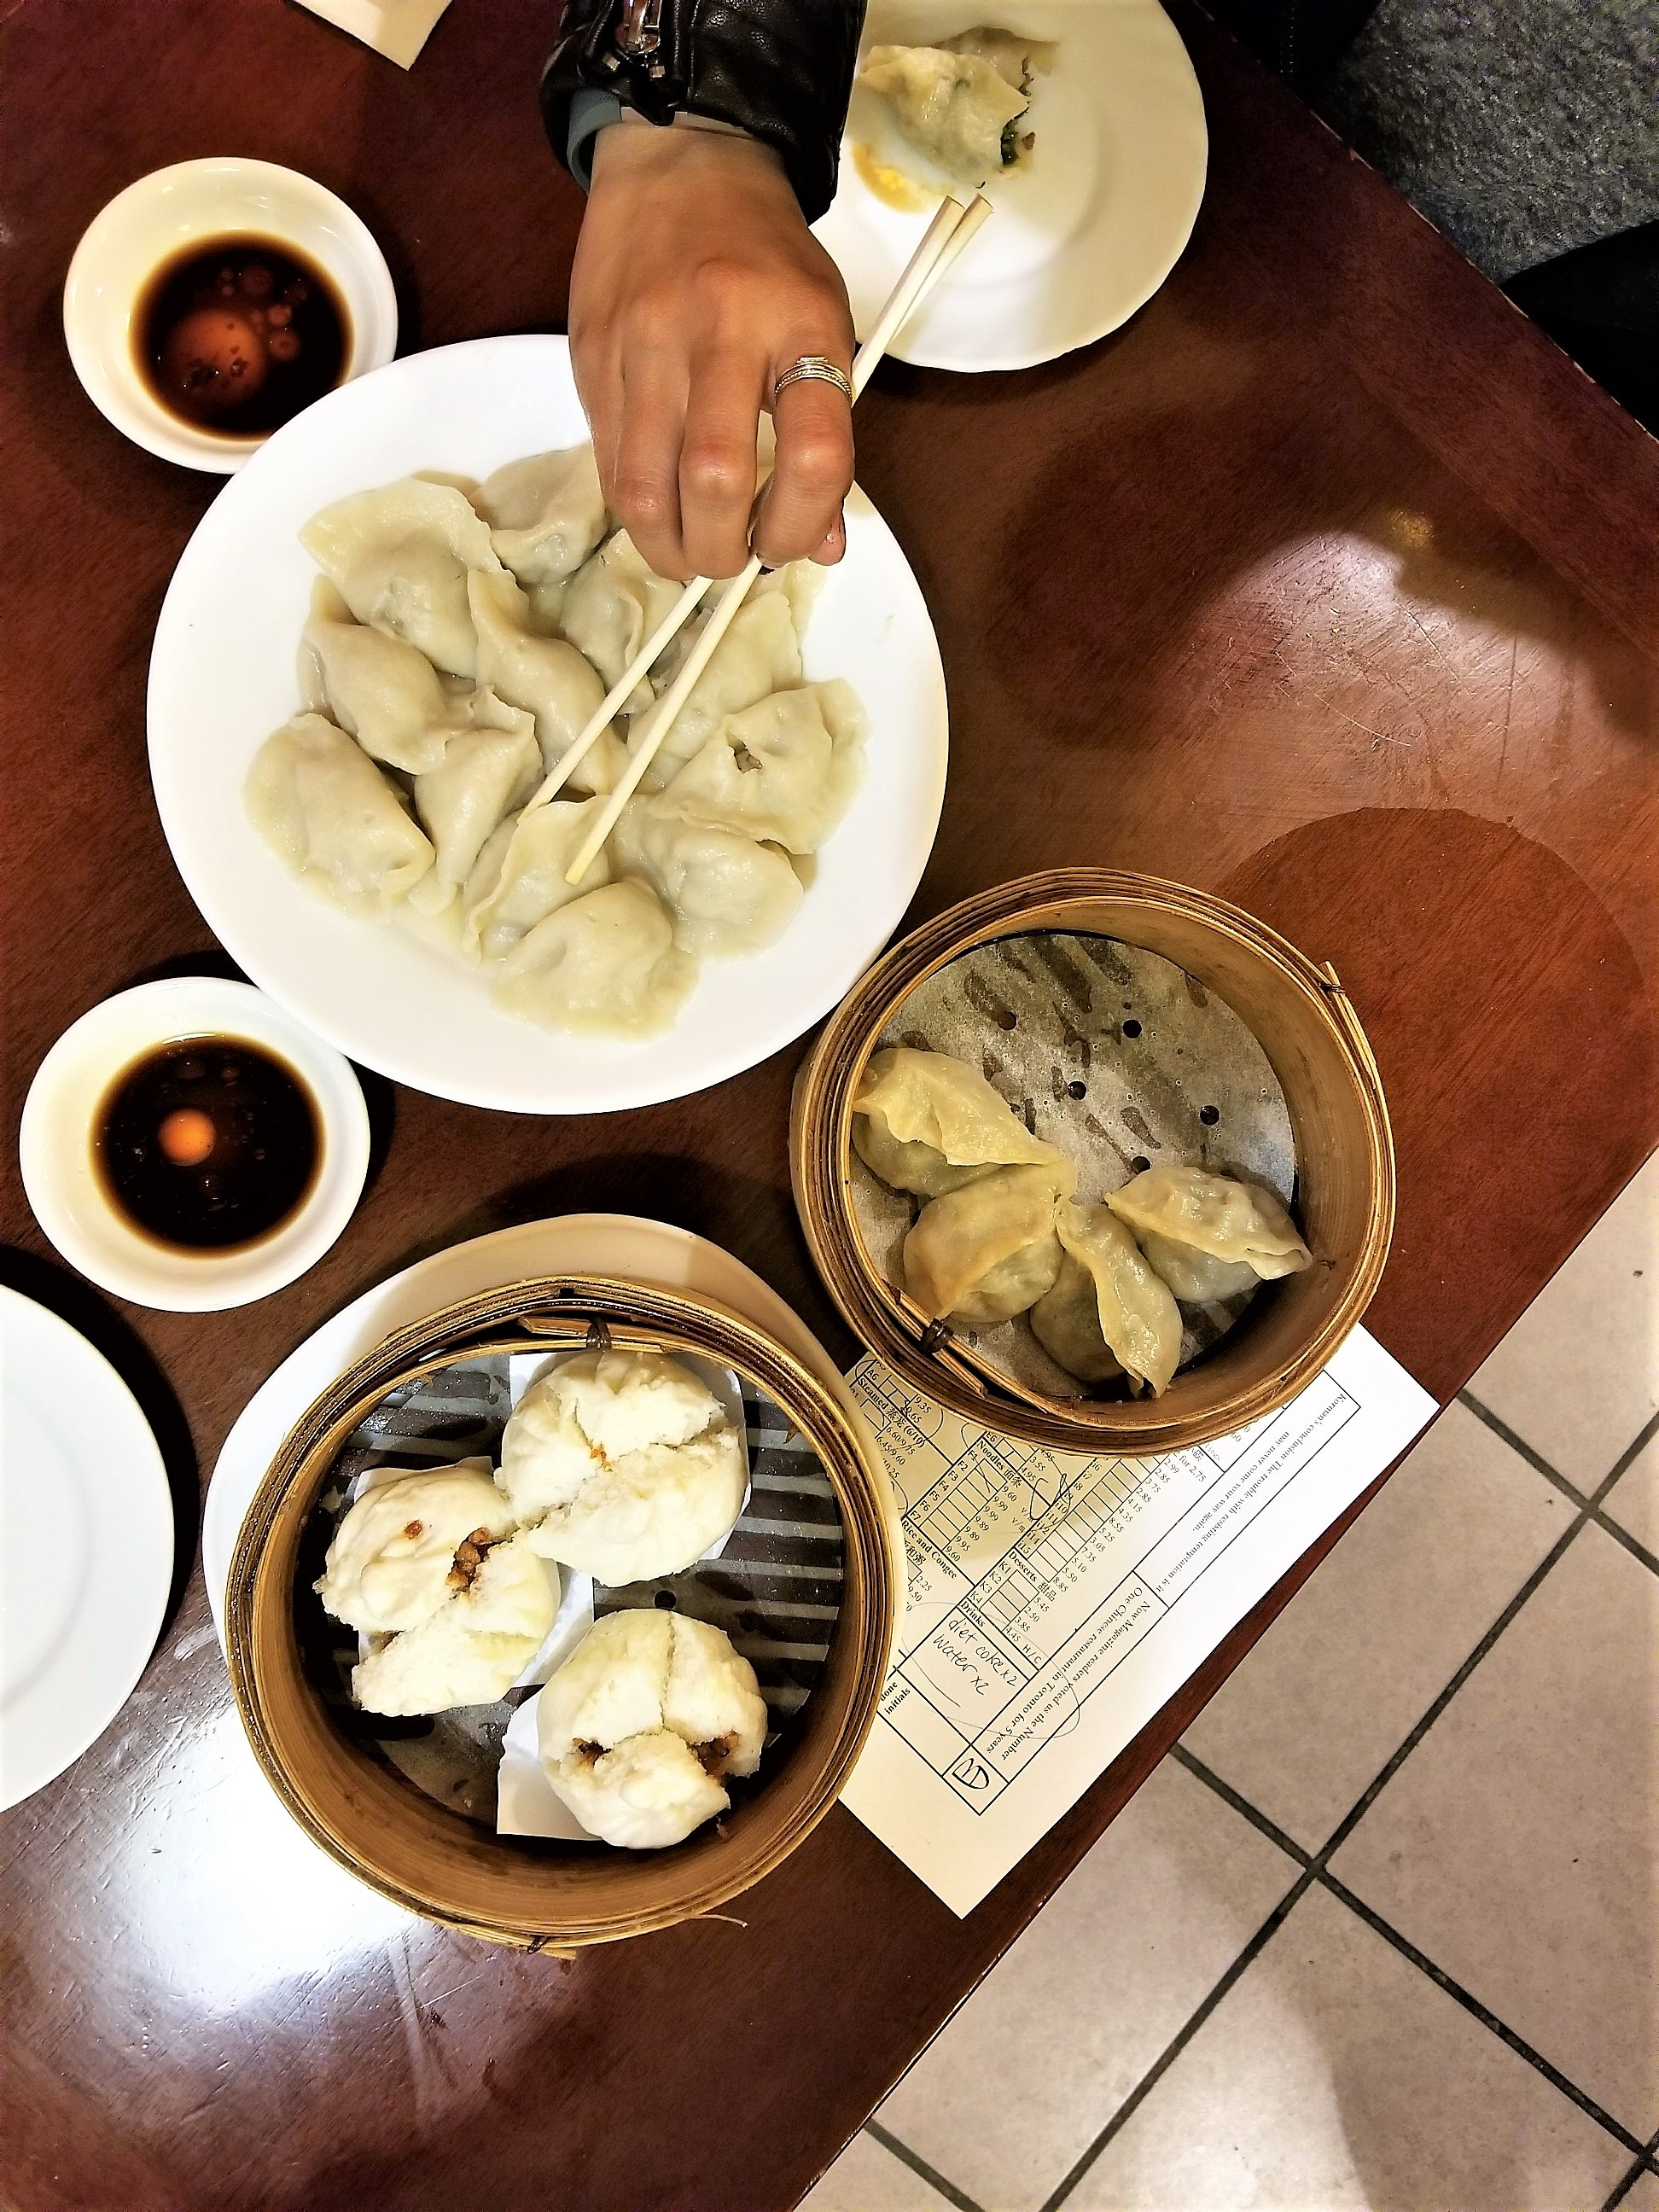 If you are a dumpling lover,  Mother's Dumplings  is where it's at. We ordered some dumplings and steamed buns, all of which were tasty.